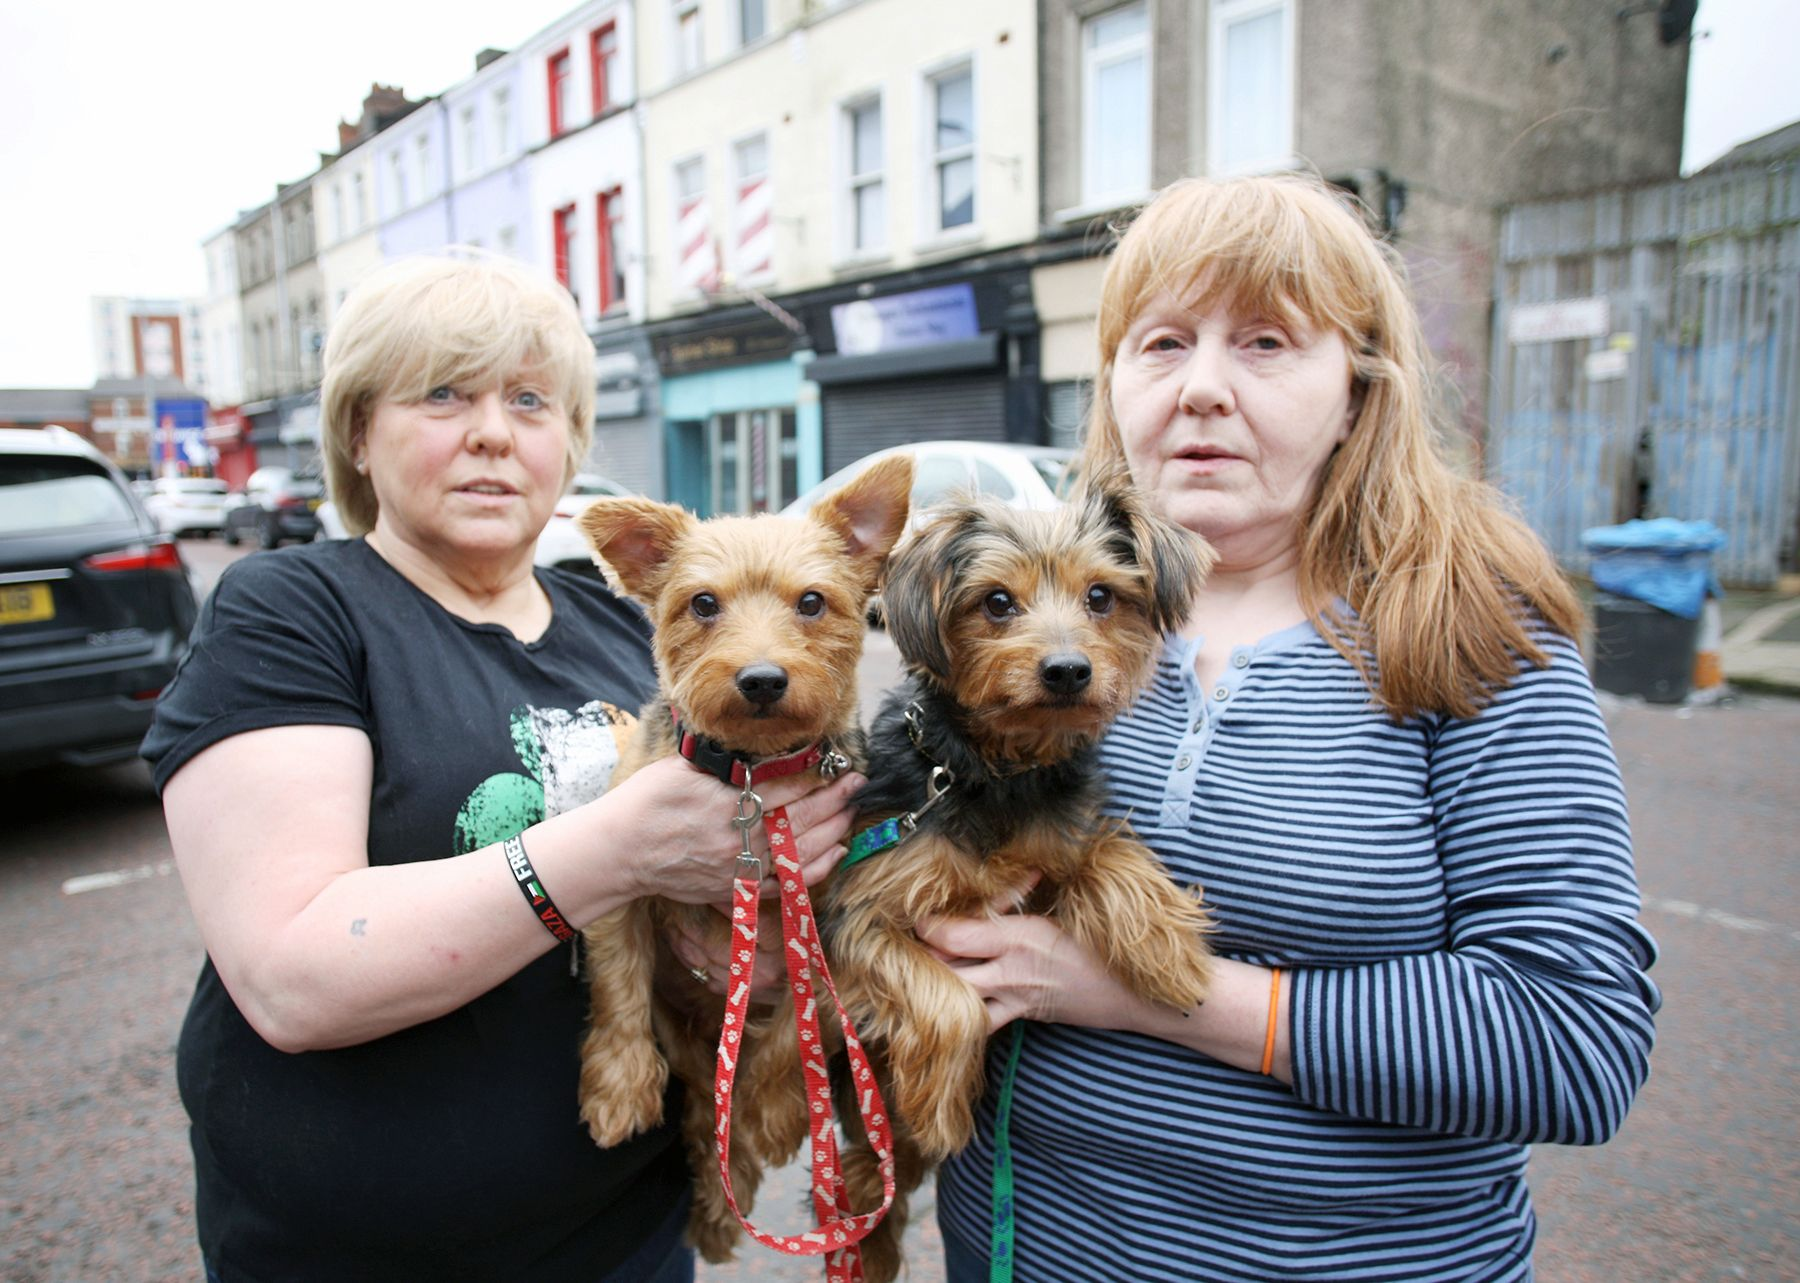 HOME SWEET HOME: Brenda and Angel with two of their dogs in Smithfield, a place that their family has called home for two hundred years